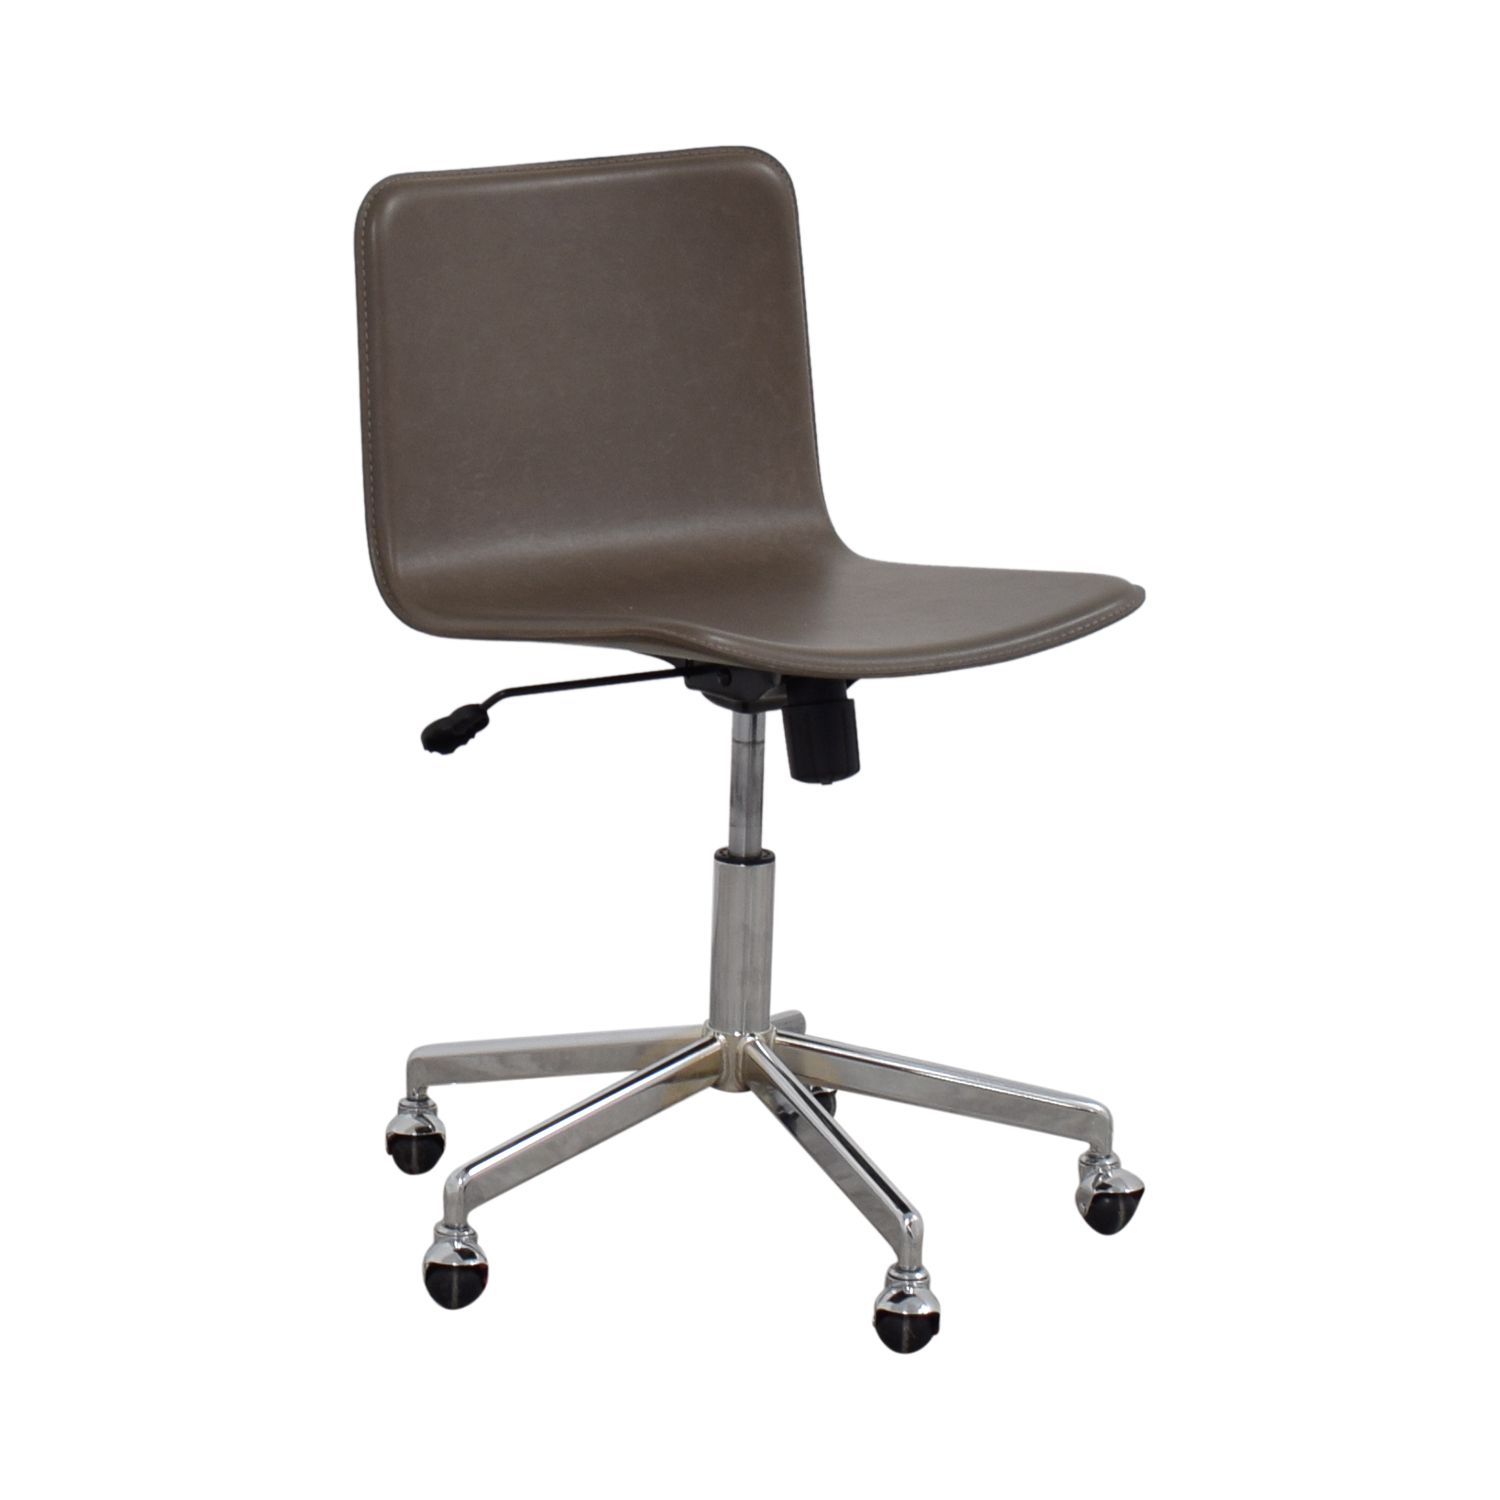 83 OFF  CB2 CB2 Grey Leather Adjustable Office Chair on